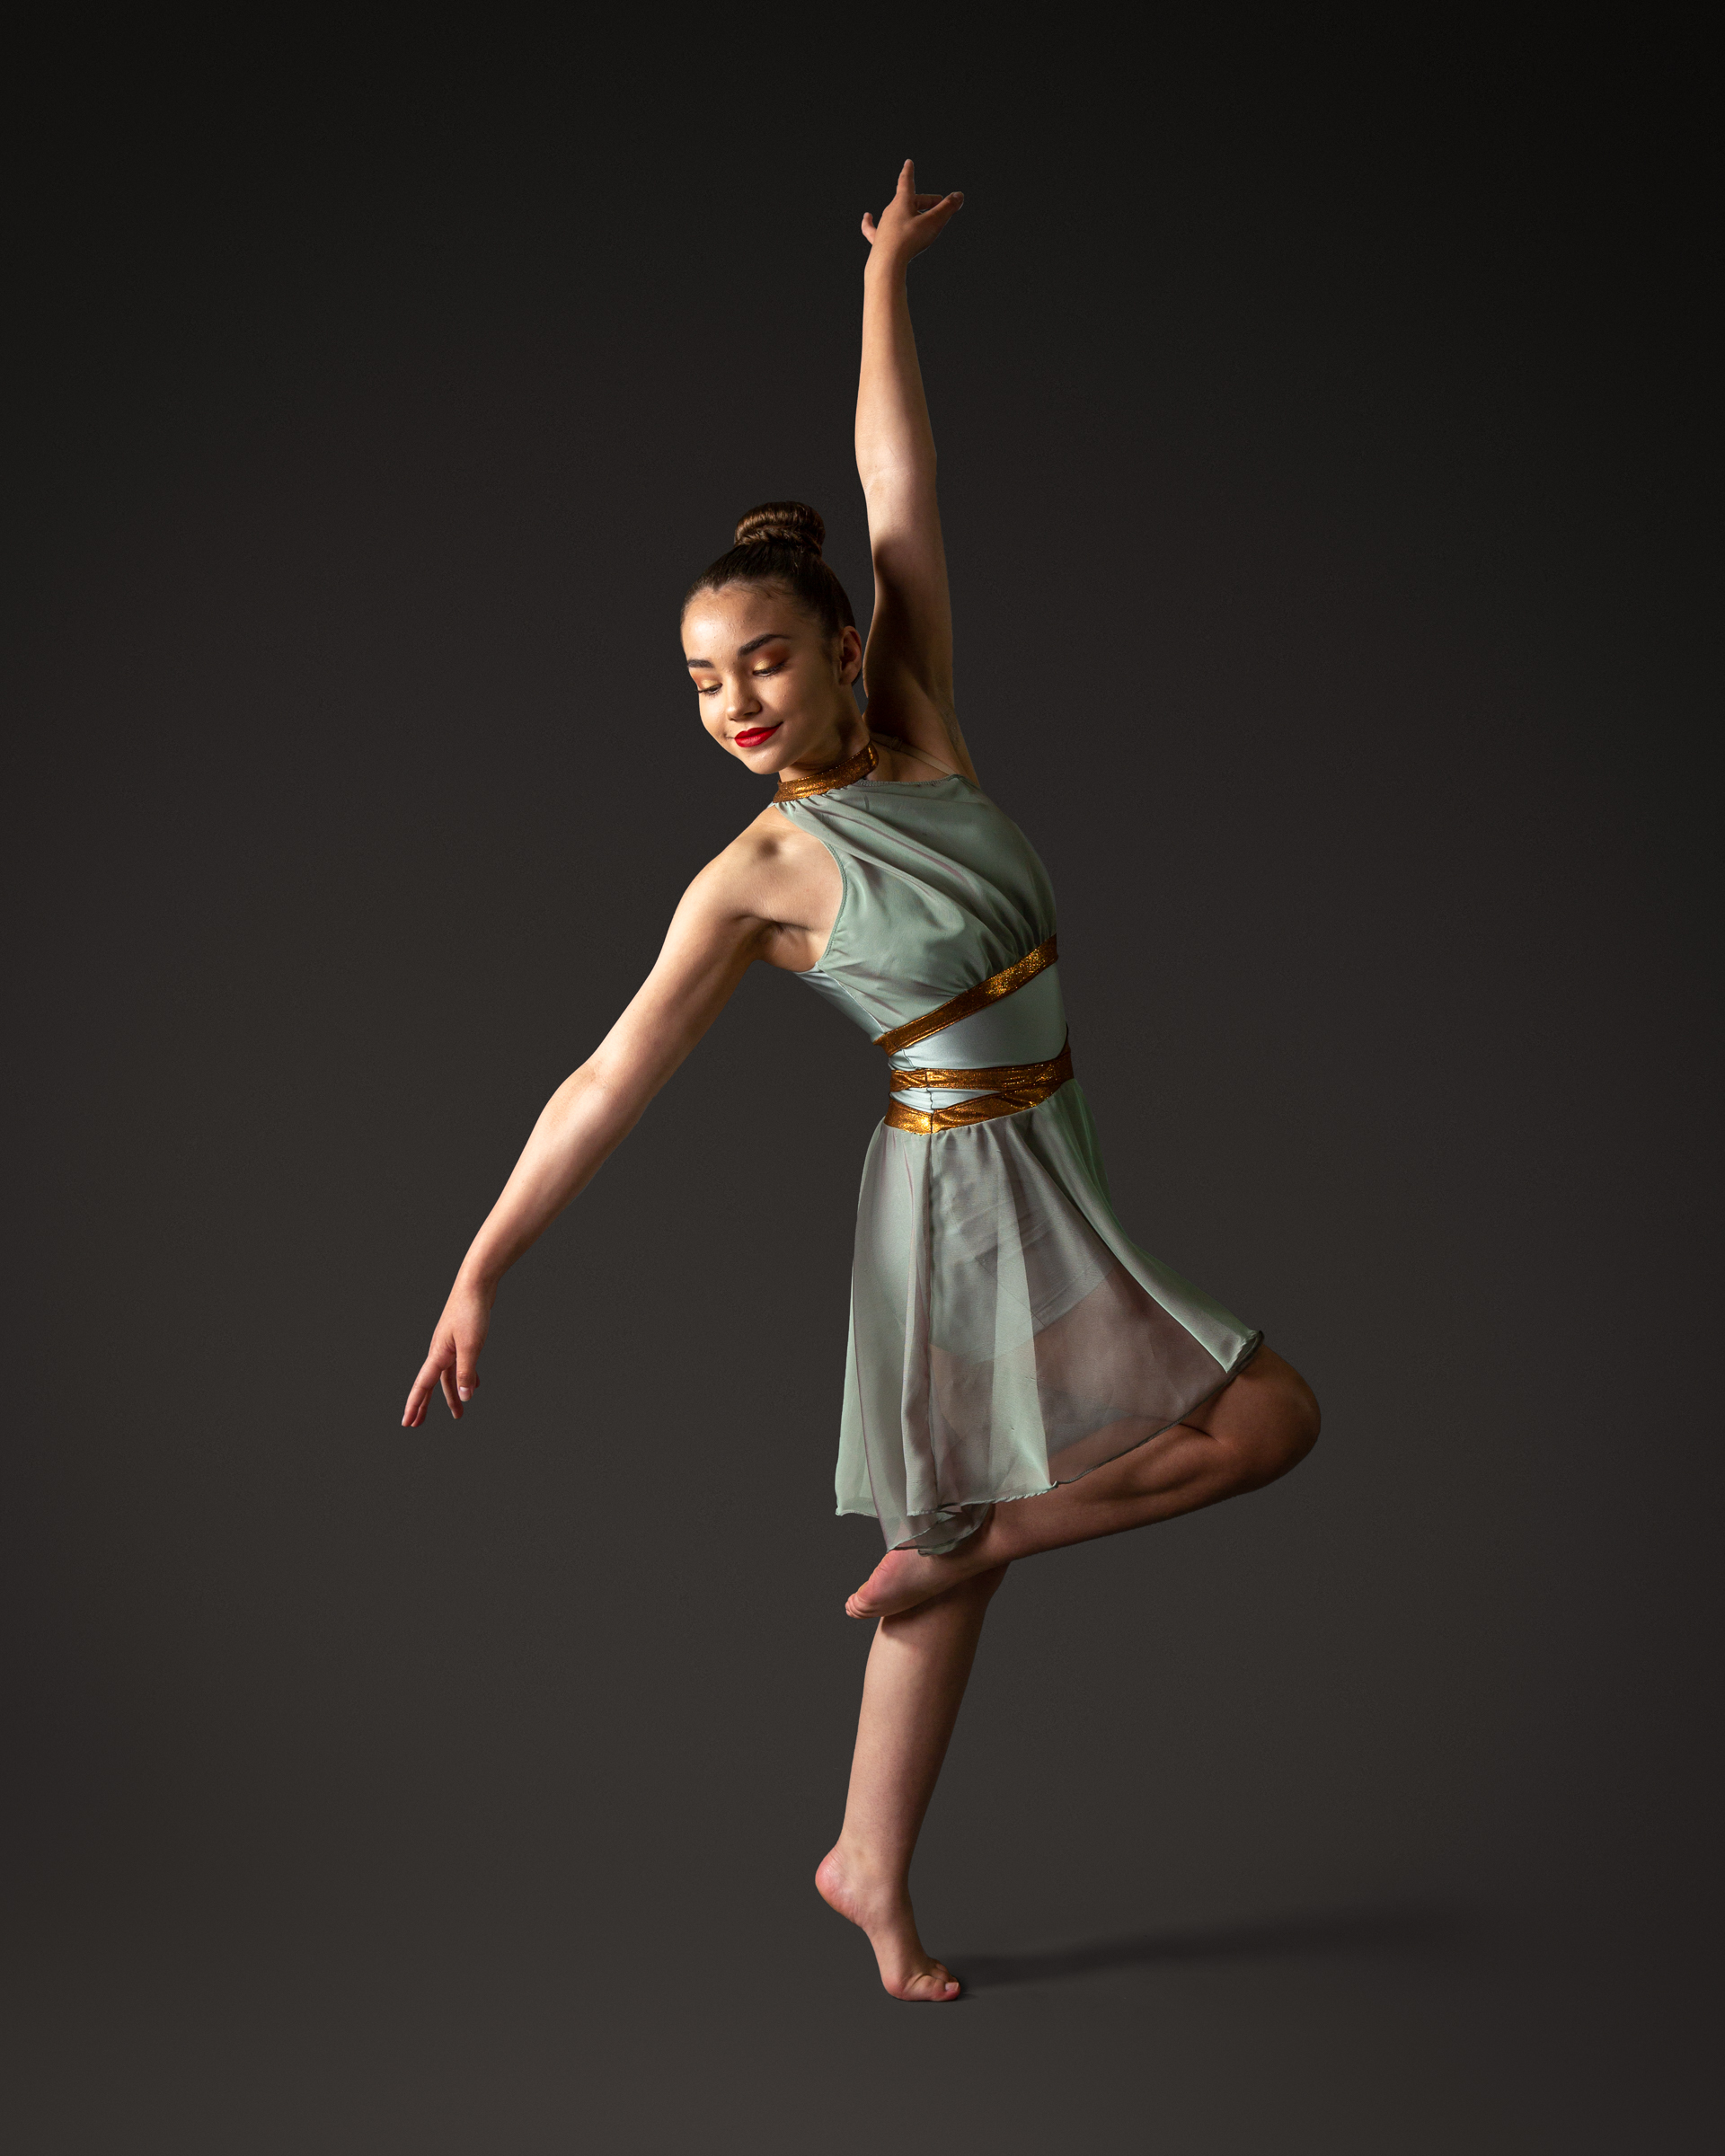 Dance portrait